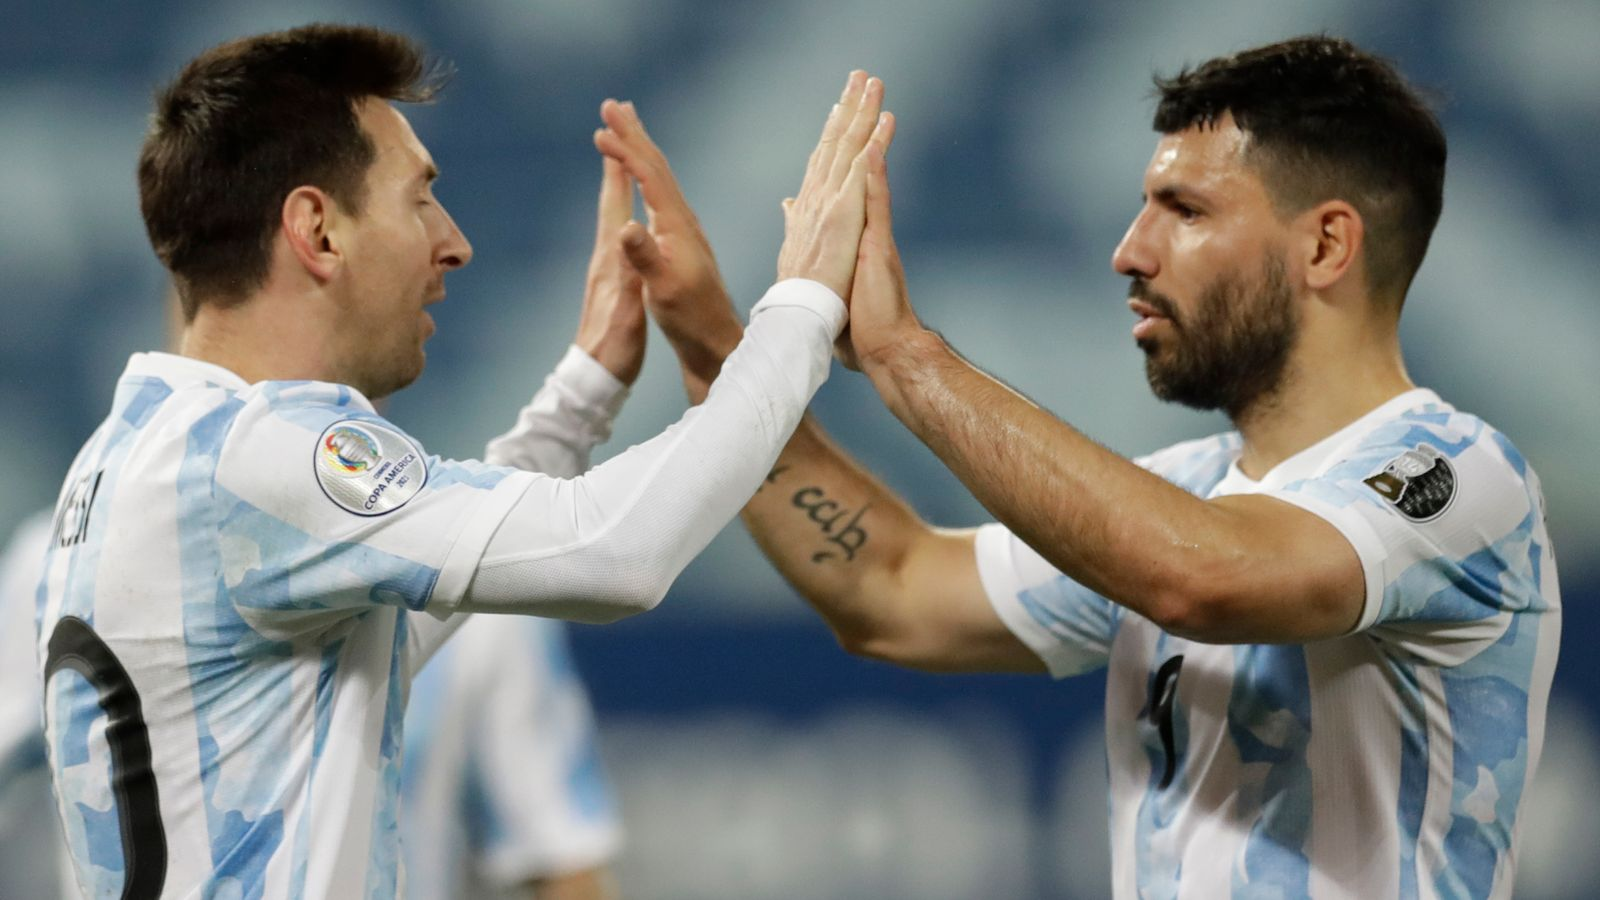 Copa America: Lionel Messi becomes Argentina's most capped player in win against Bolivia   Football News   Sky Sports